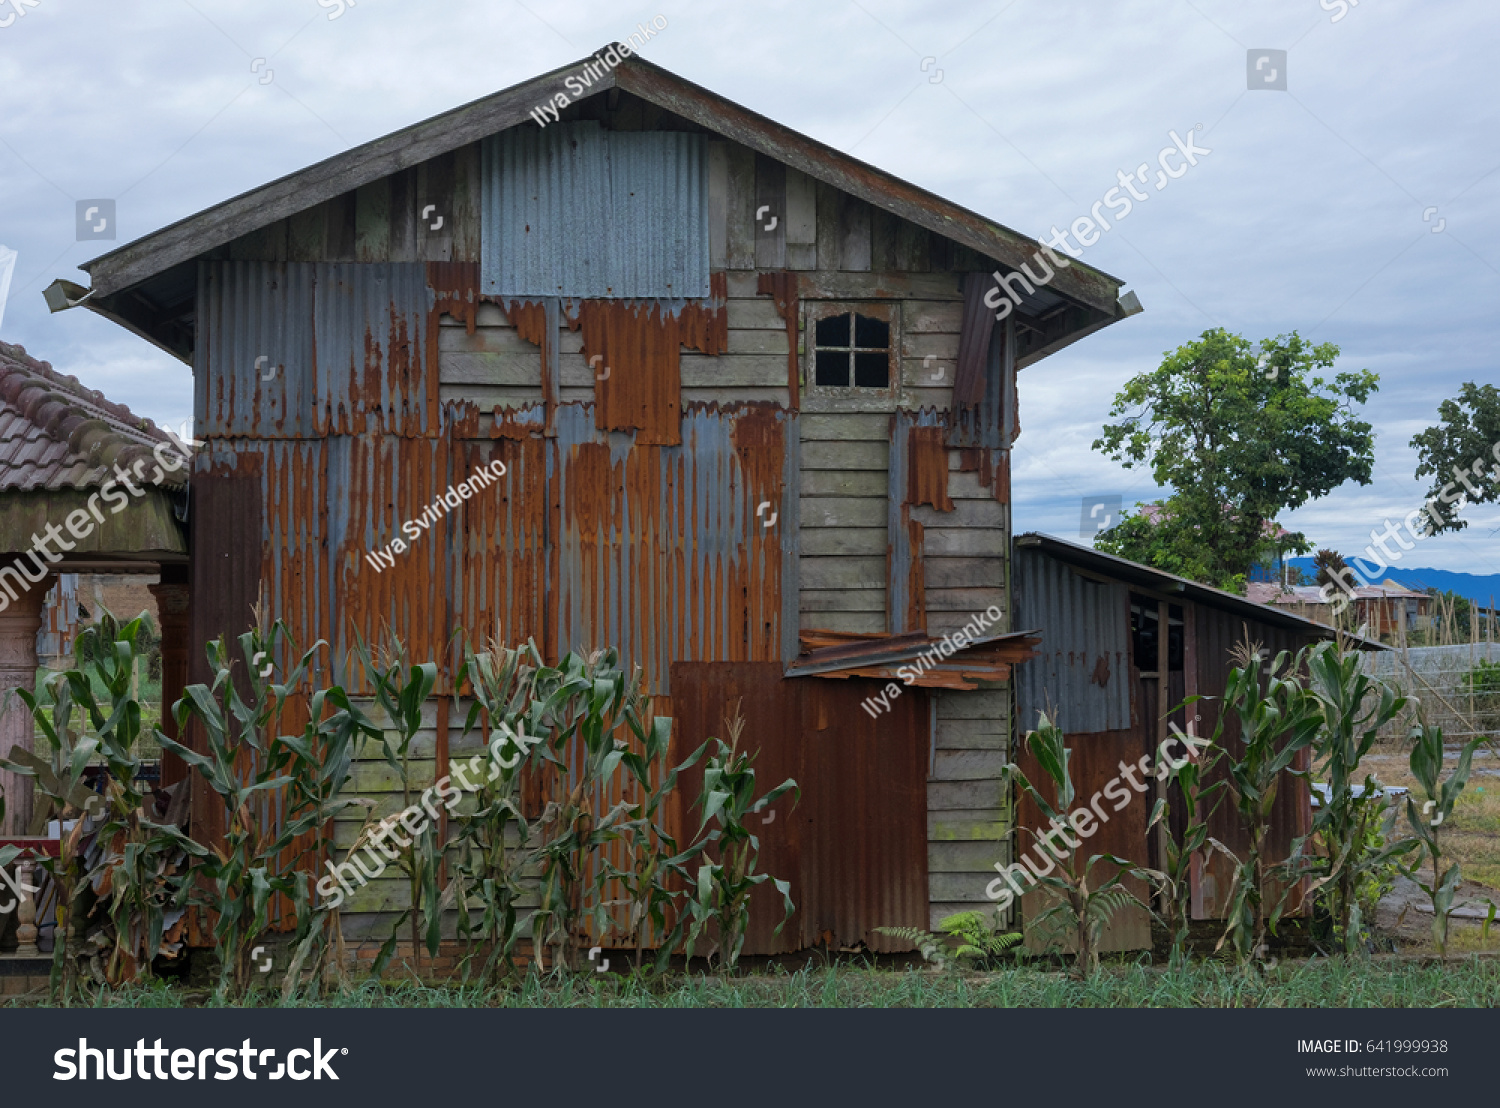 Old rusty abandoned rural house in countryside area. Grass and green corn in front. #641999938